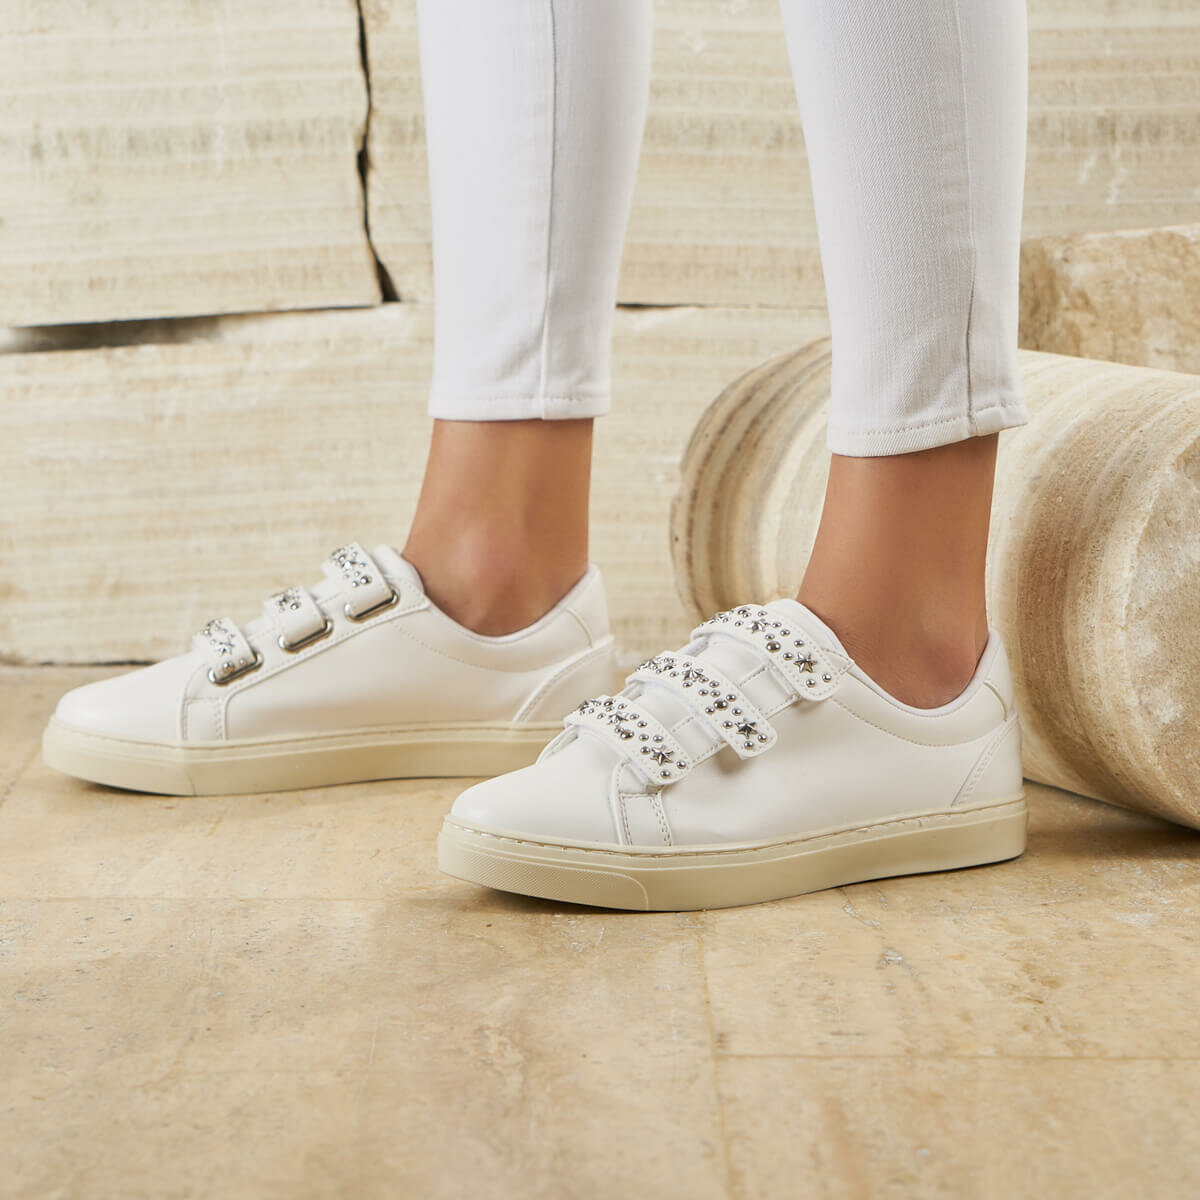 FLO BEATLE01Z SKIN White Women 'S Sneaker Shoes BUTIGO